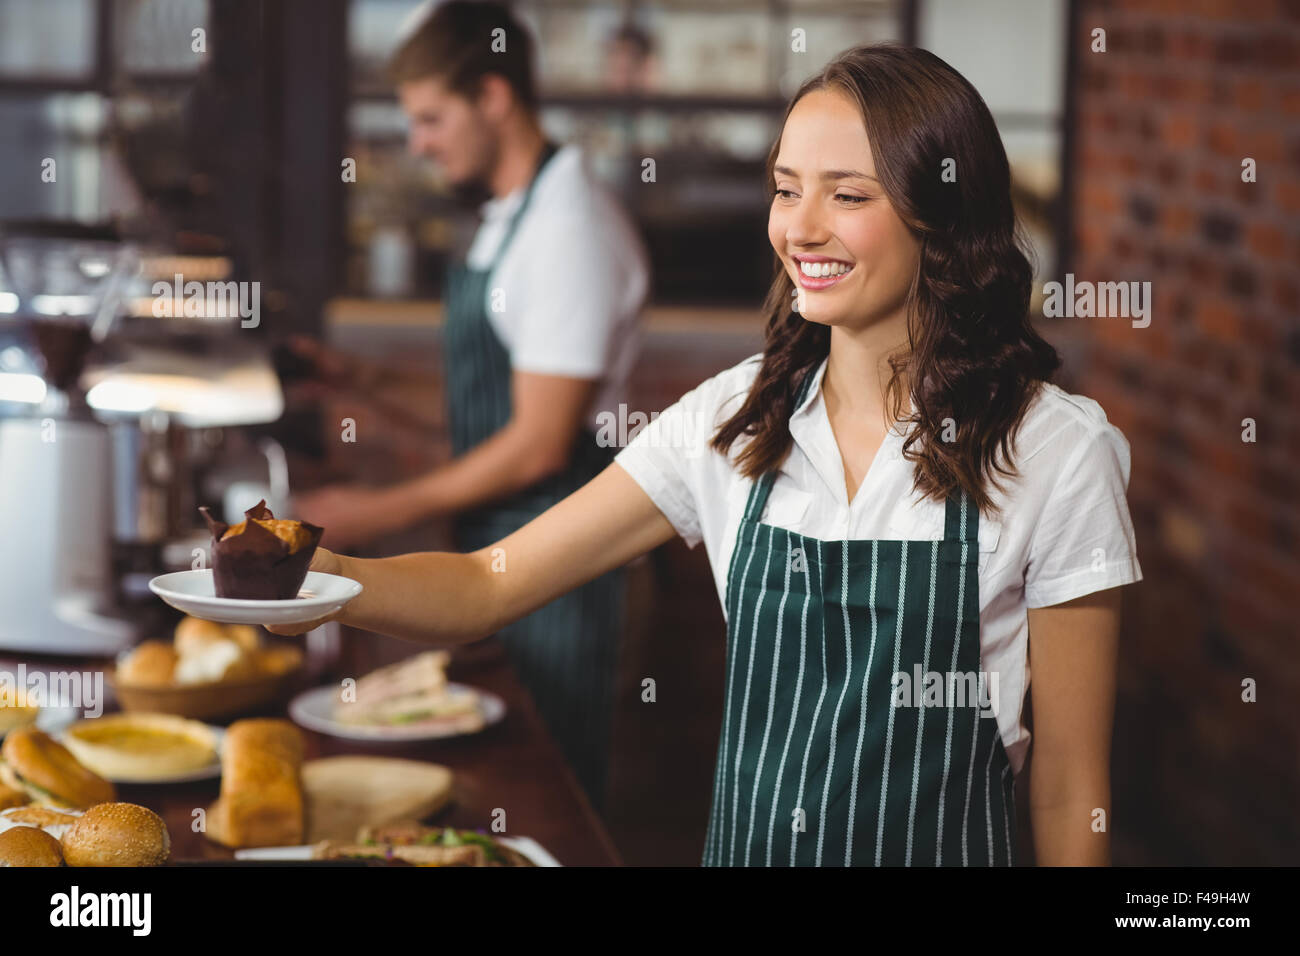 Smiling waitress serving un muffin Banque D'Images